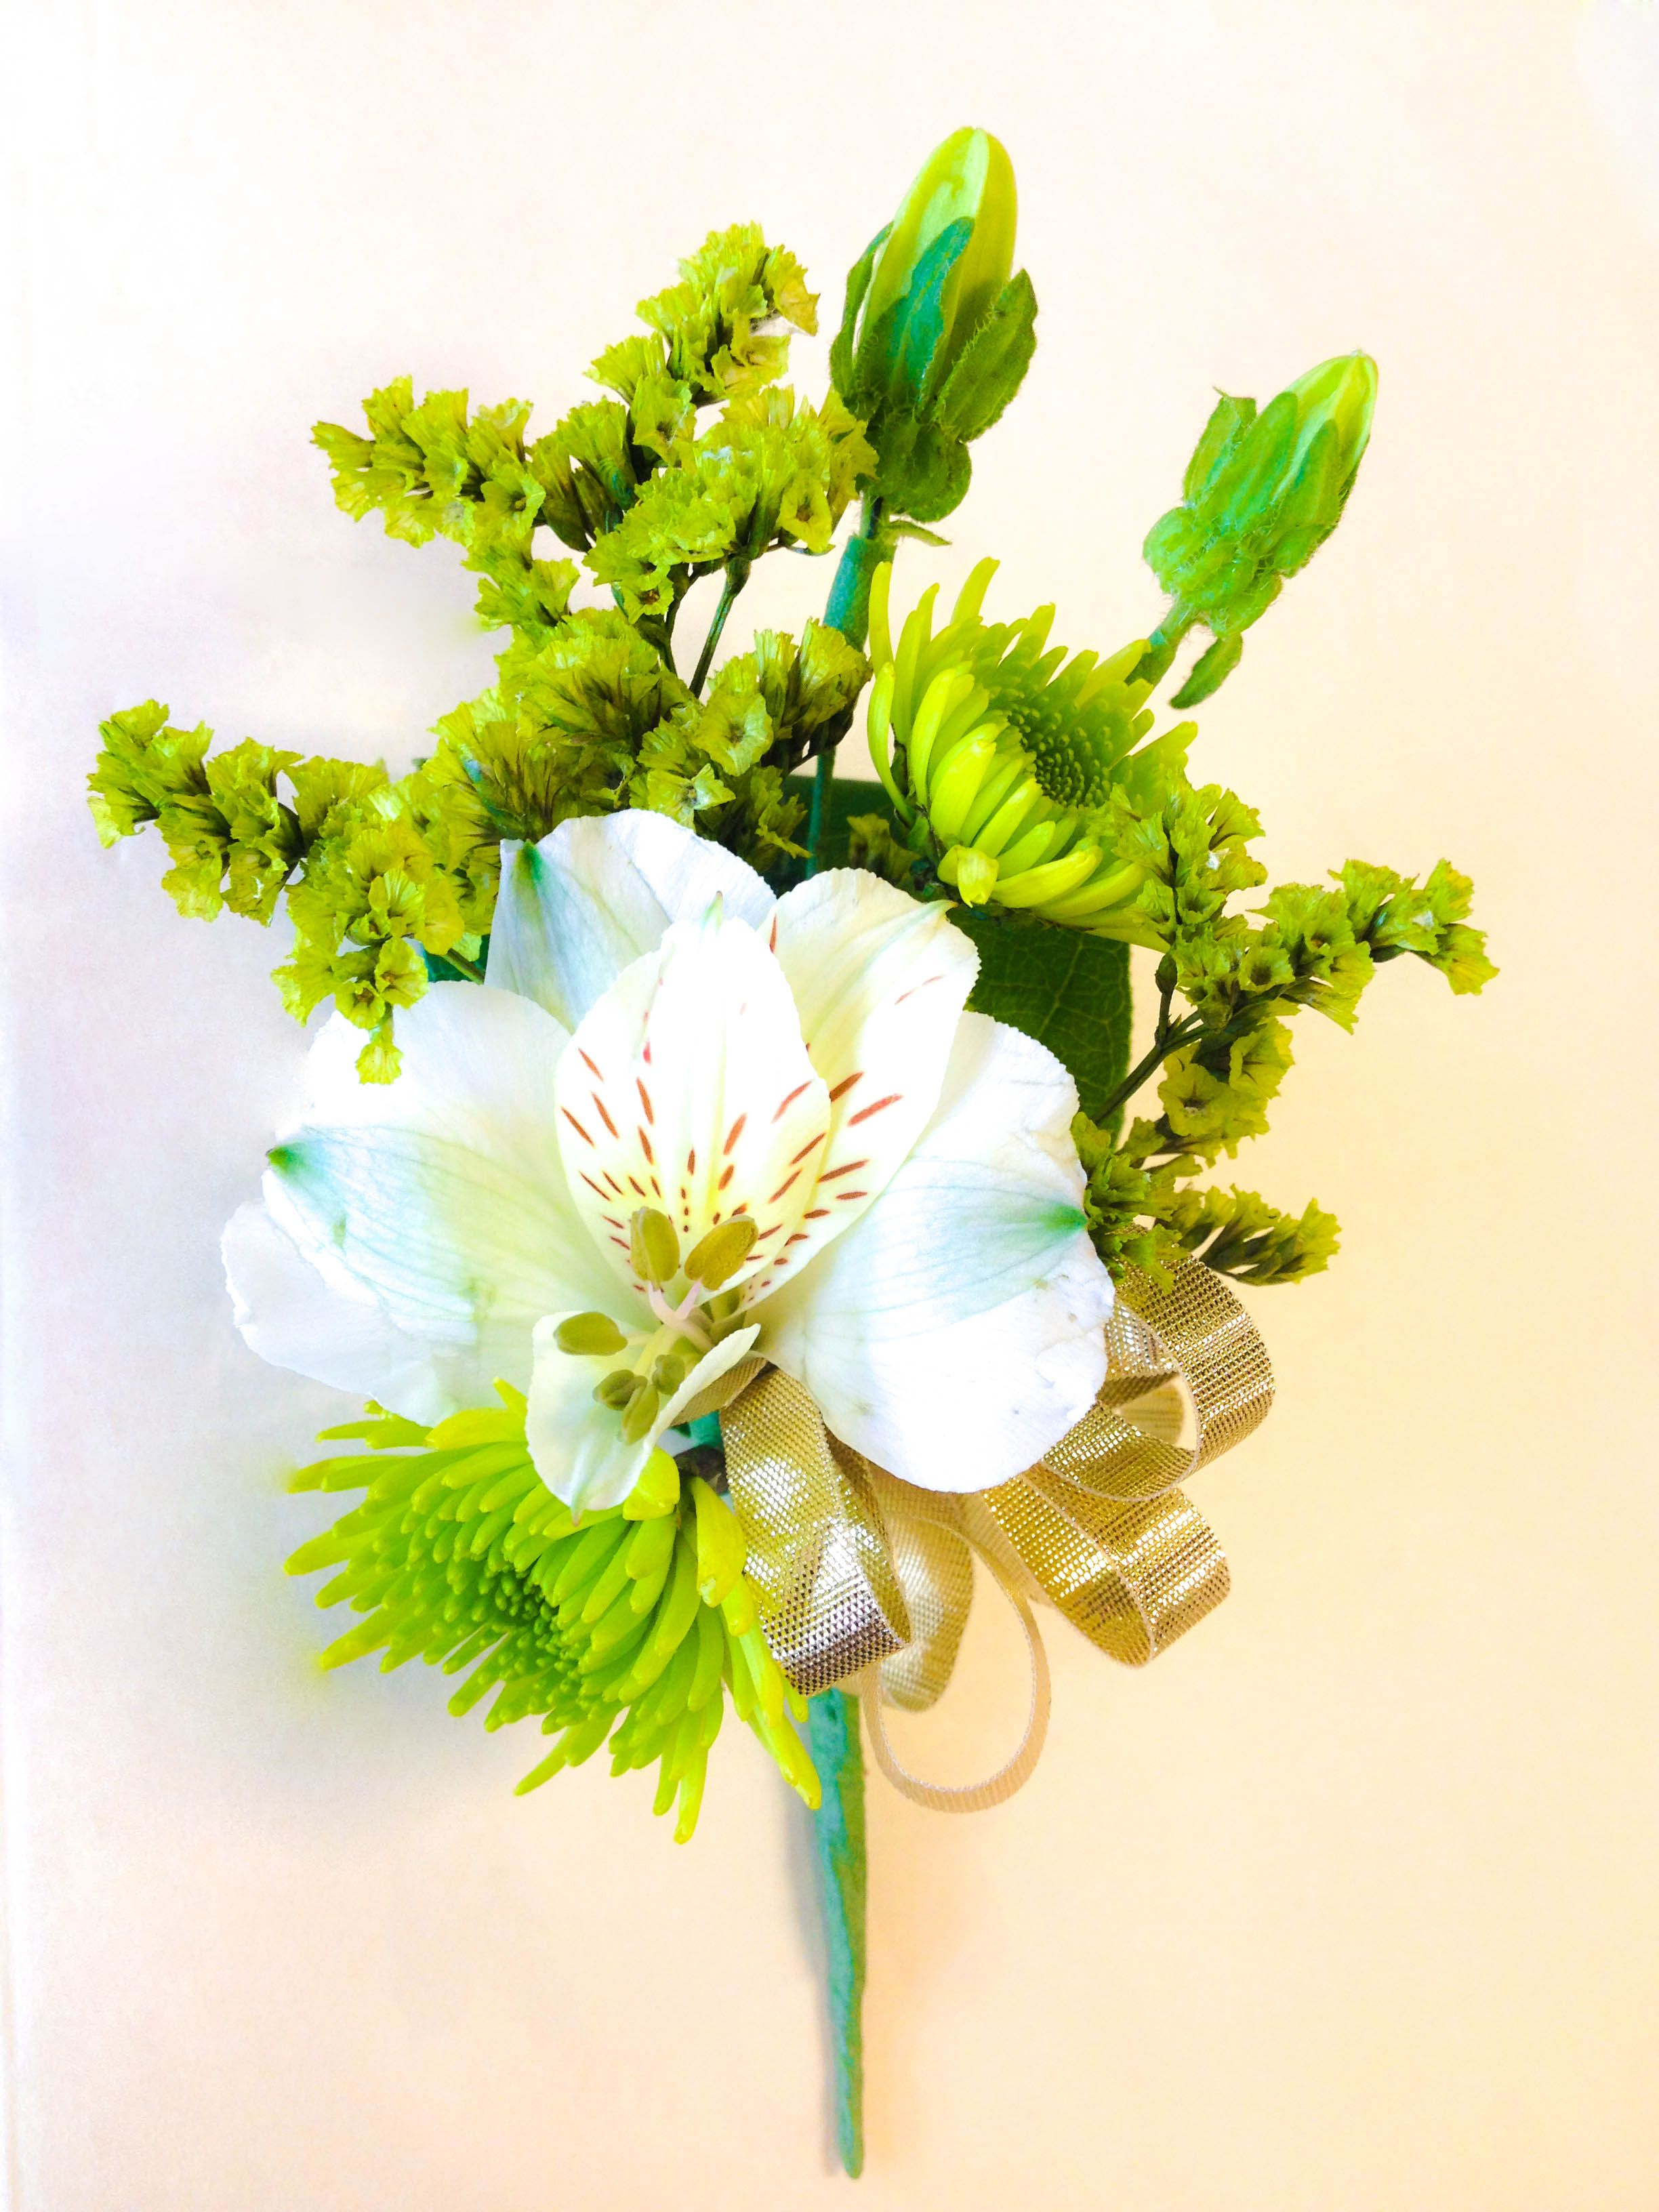 This arrangement was created by Bing Floral Design